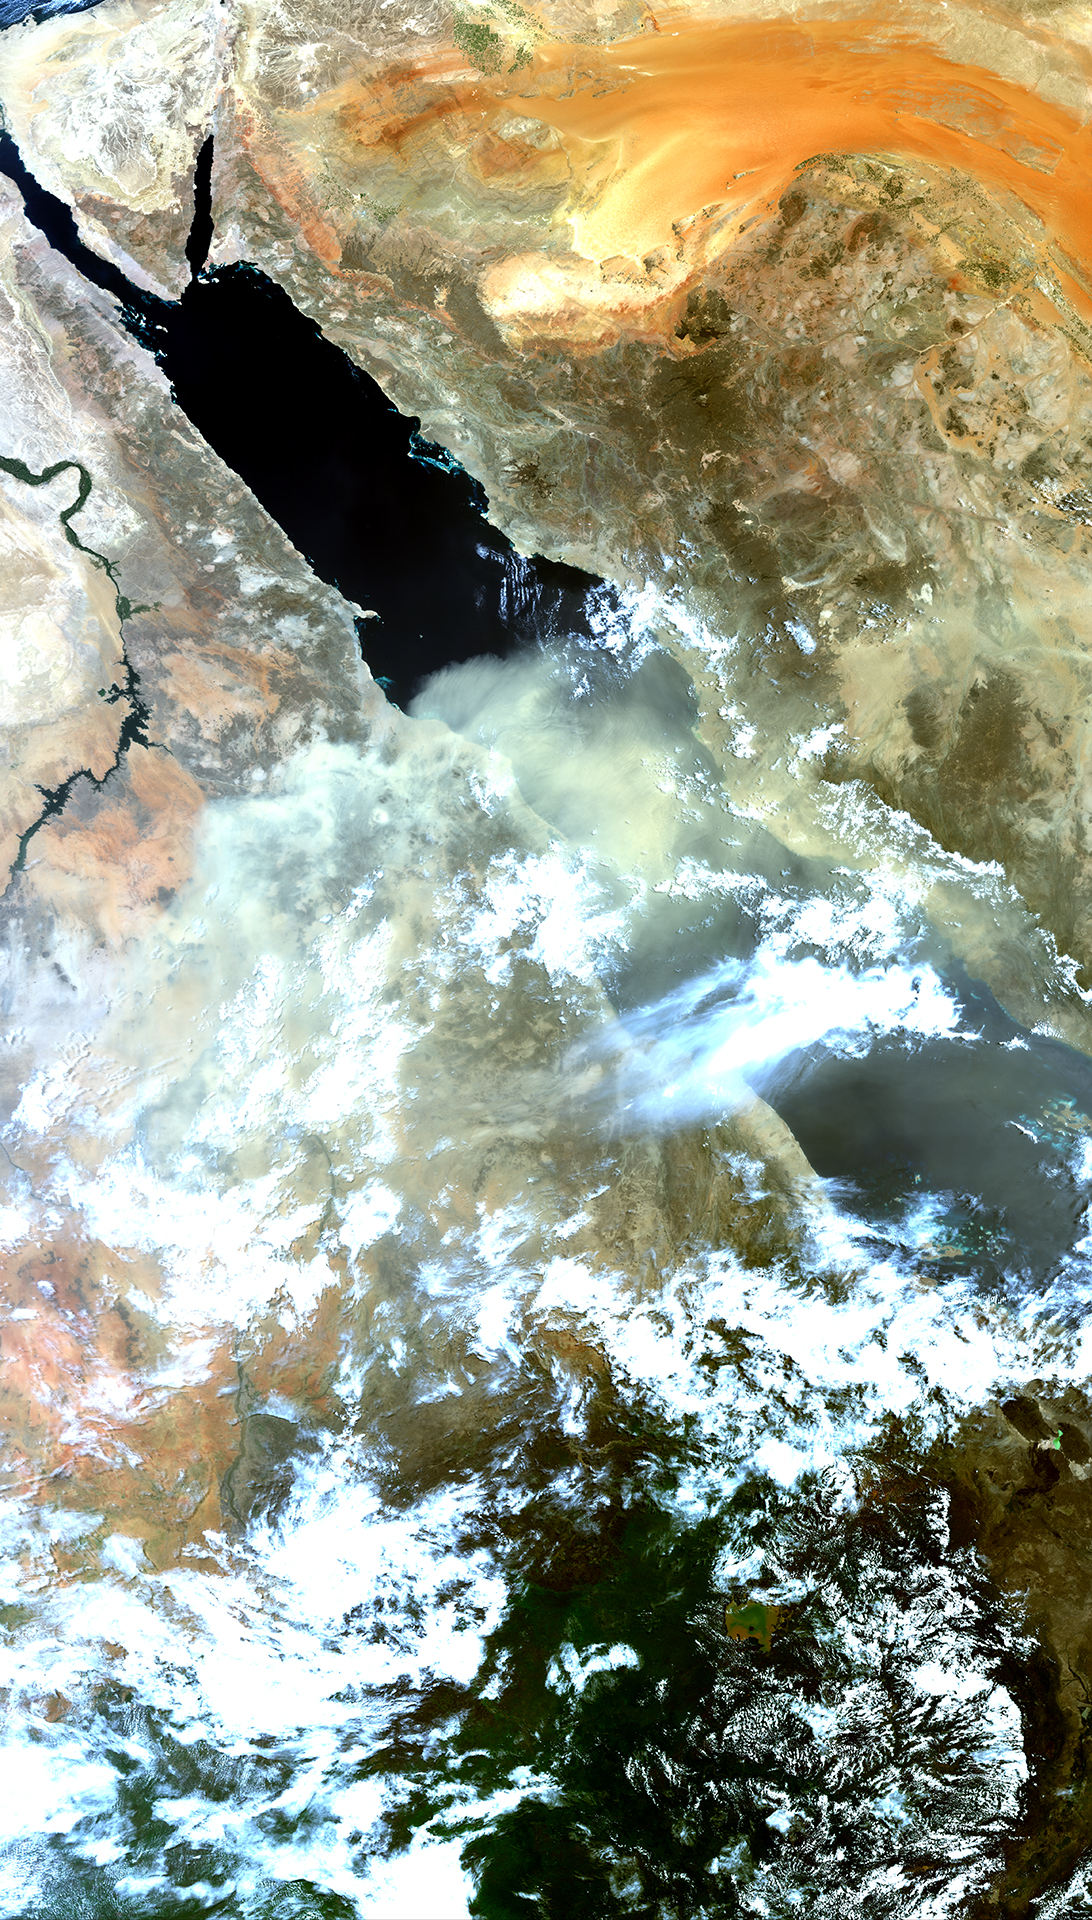 http://www.esa.int/var/esa/storage/images/esa_multimedia/images/2016/07/dust_storm_over_the_red_sea/16081097-1-eng-GB/Dust_storm_over_the_Red_Sea.jpg